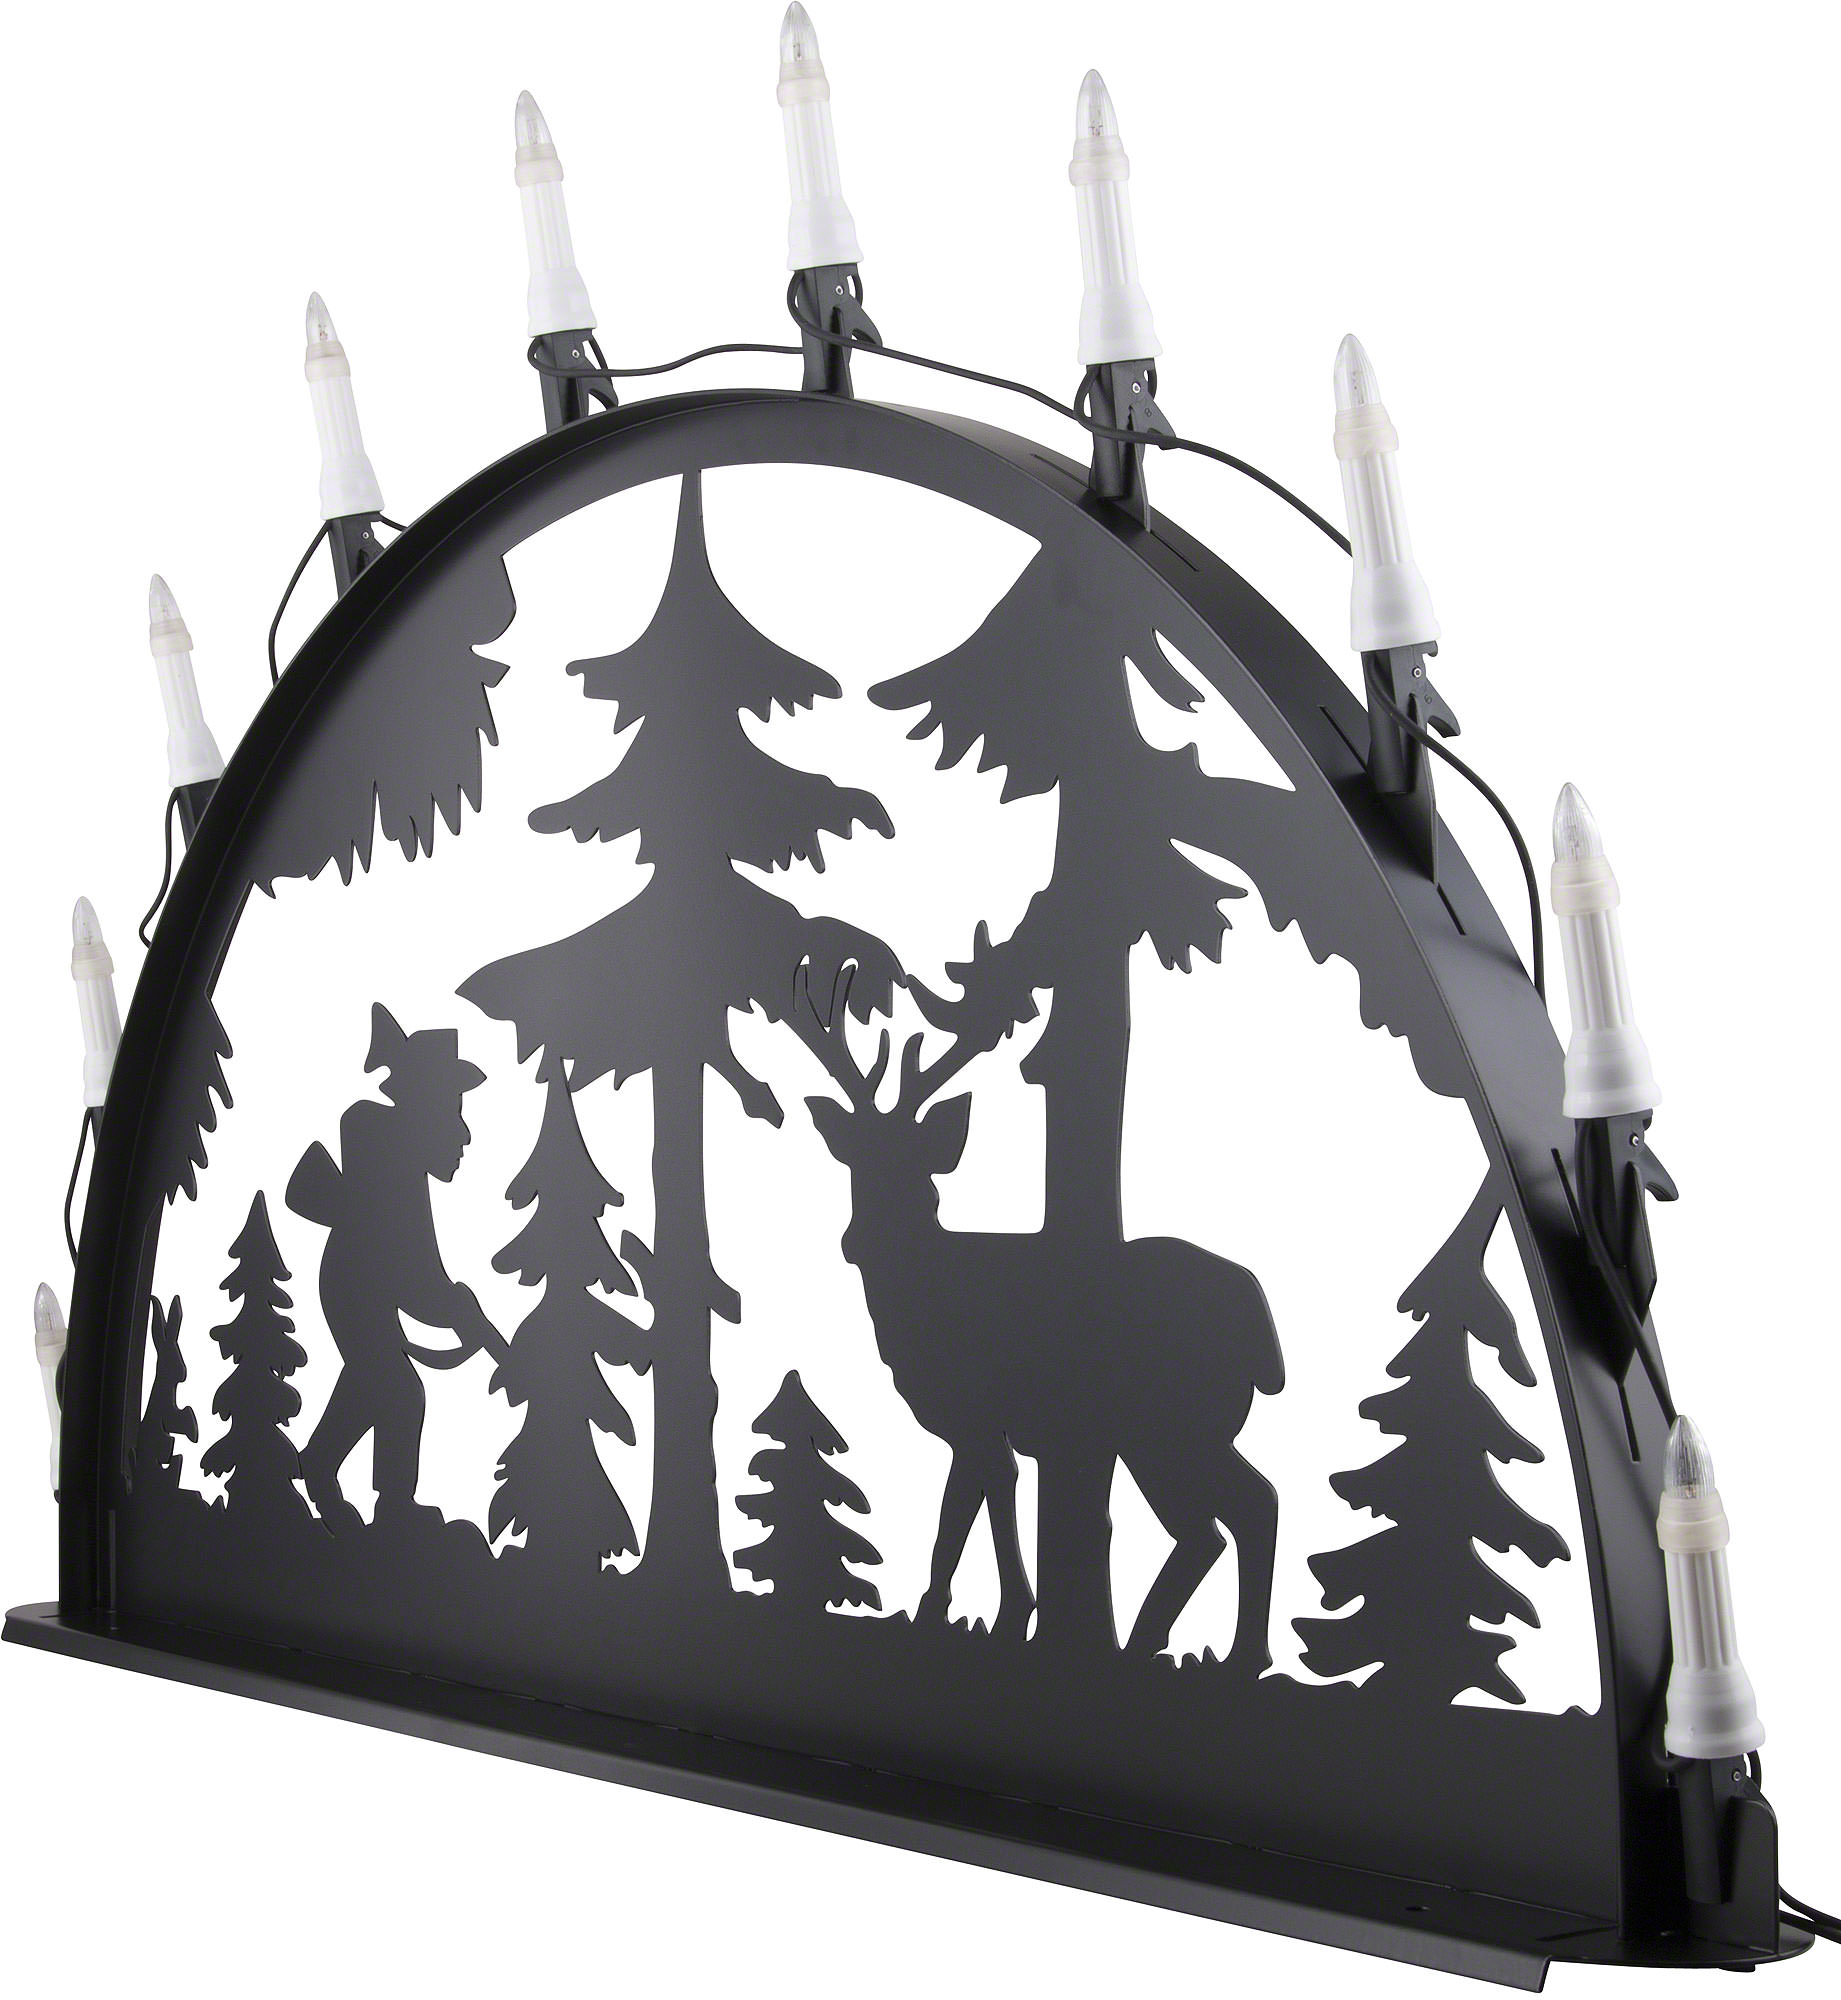 Schwibbogen Modern Metall Candle Arch For Outside Hunter 100 300 Cm 40 120 Inch